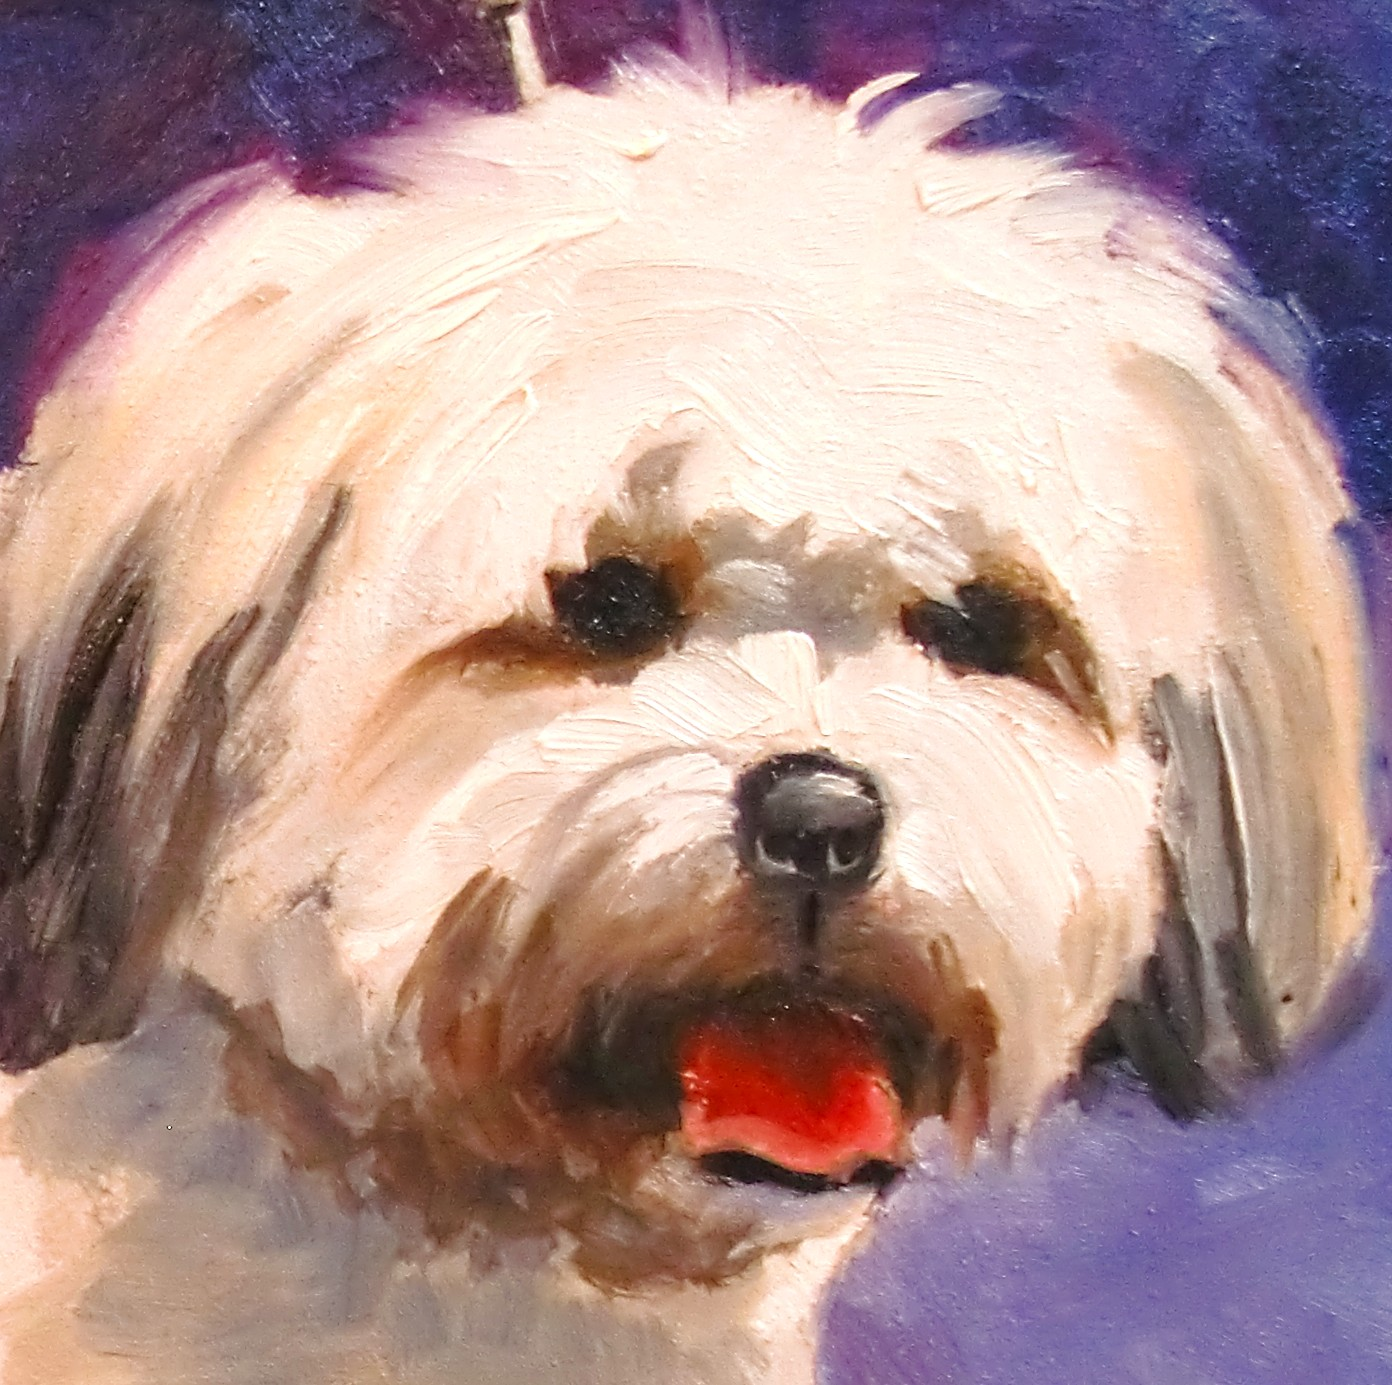 Daily painters abstract gallery 7 1 10 8 1 10 for Painting of your dog